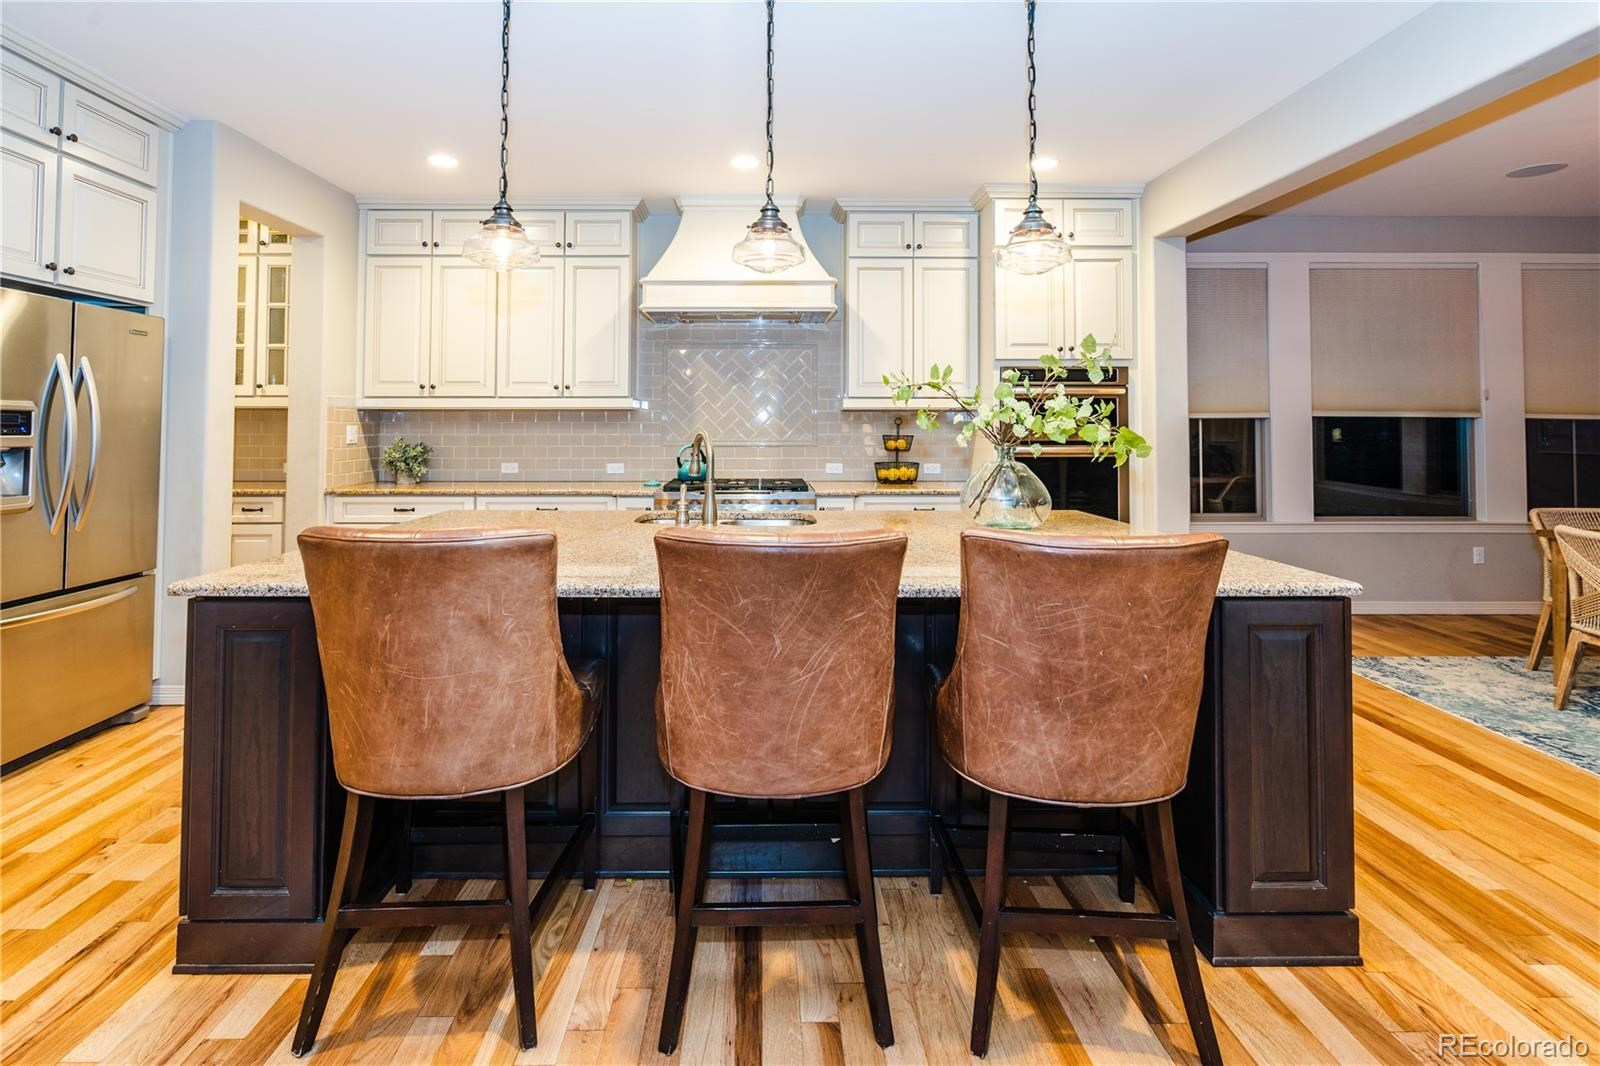 MLS# 2755672 - 6 - 10701 Manorstone Drive, Highlands Ranch, CO 80126